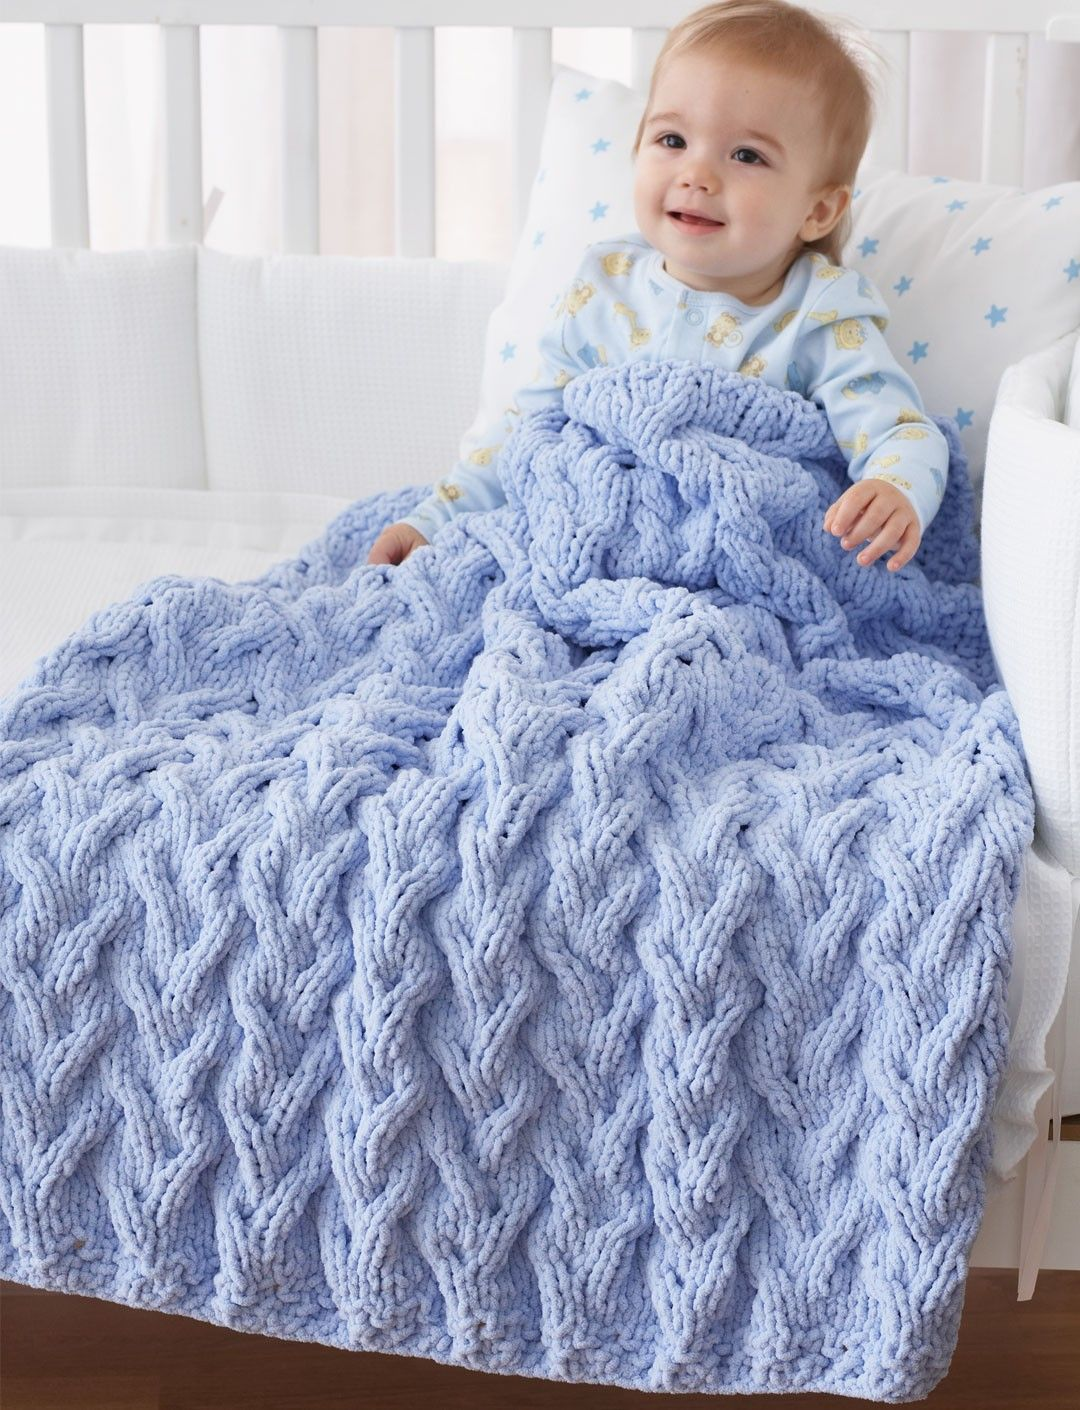 Knitted Baby Afghan Free Patterns : Cable Afghan Knitting Patterns Cable, Blanket and ...